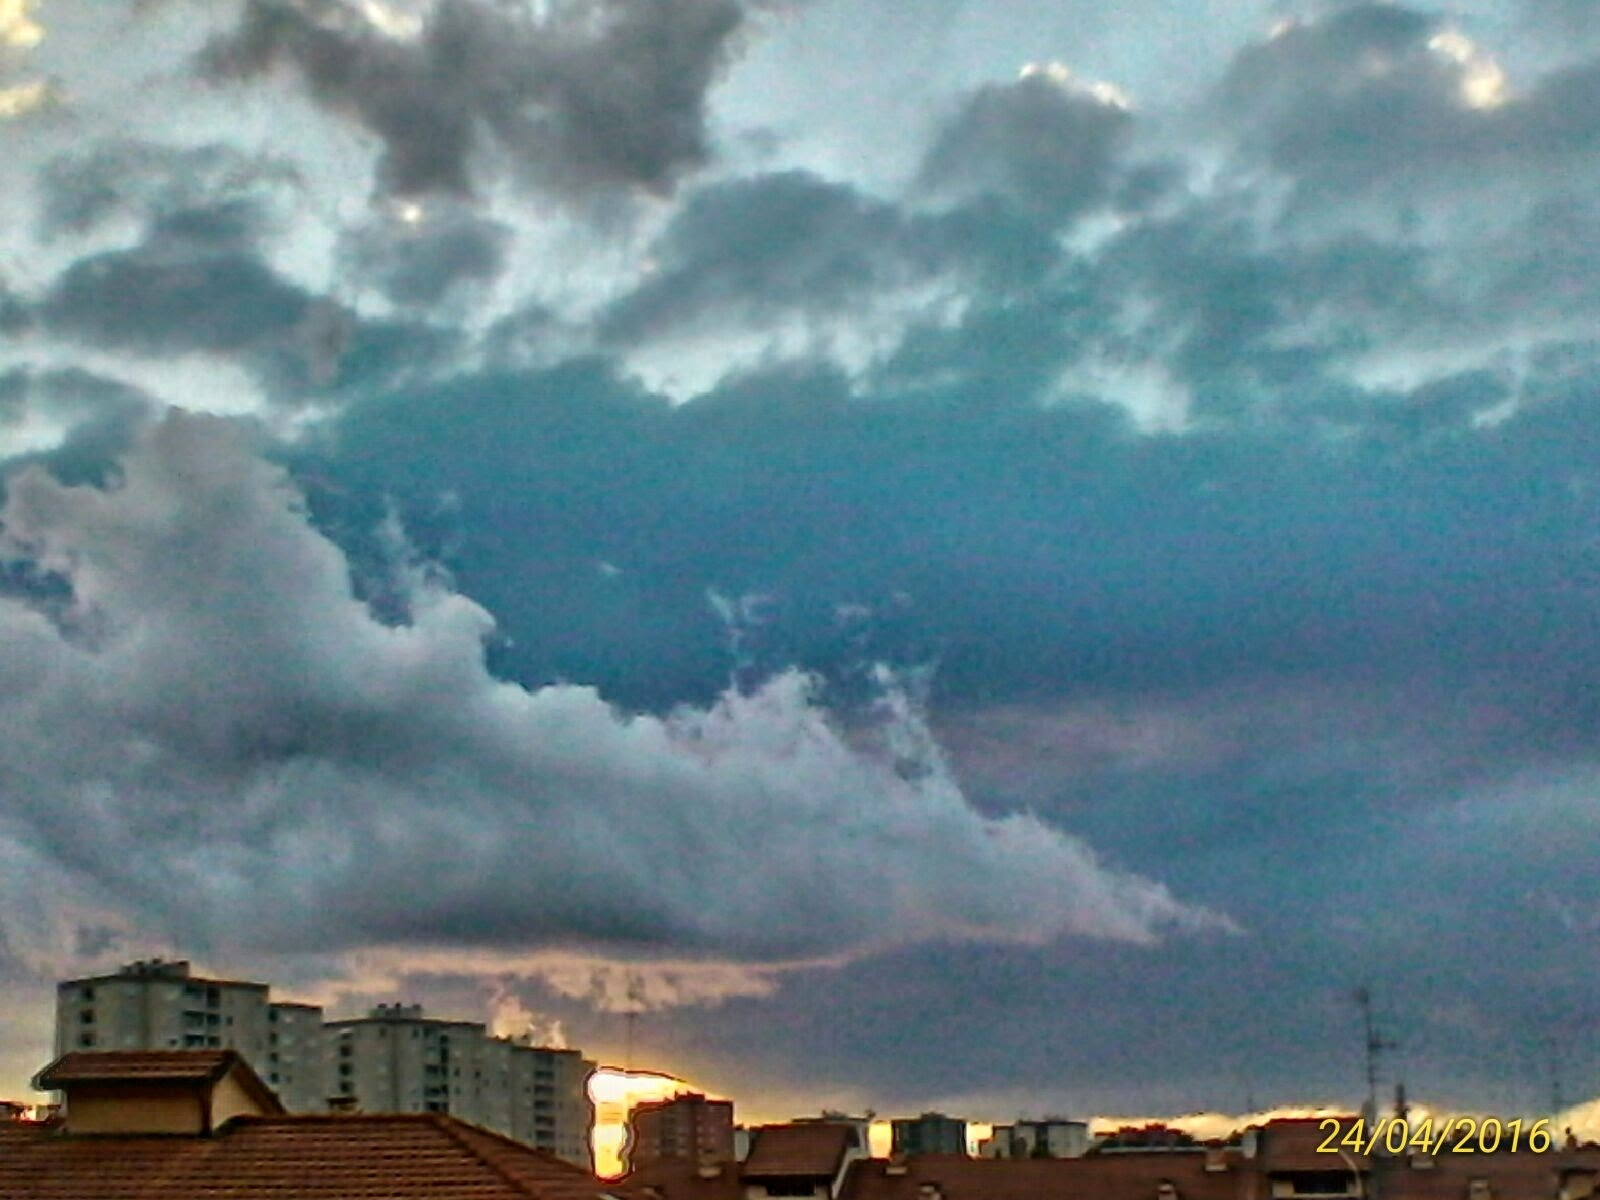 Bad weather clouds by Paolo Pasquali